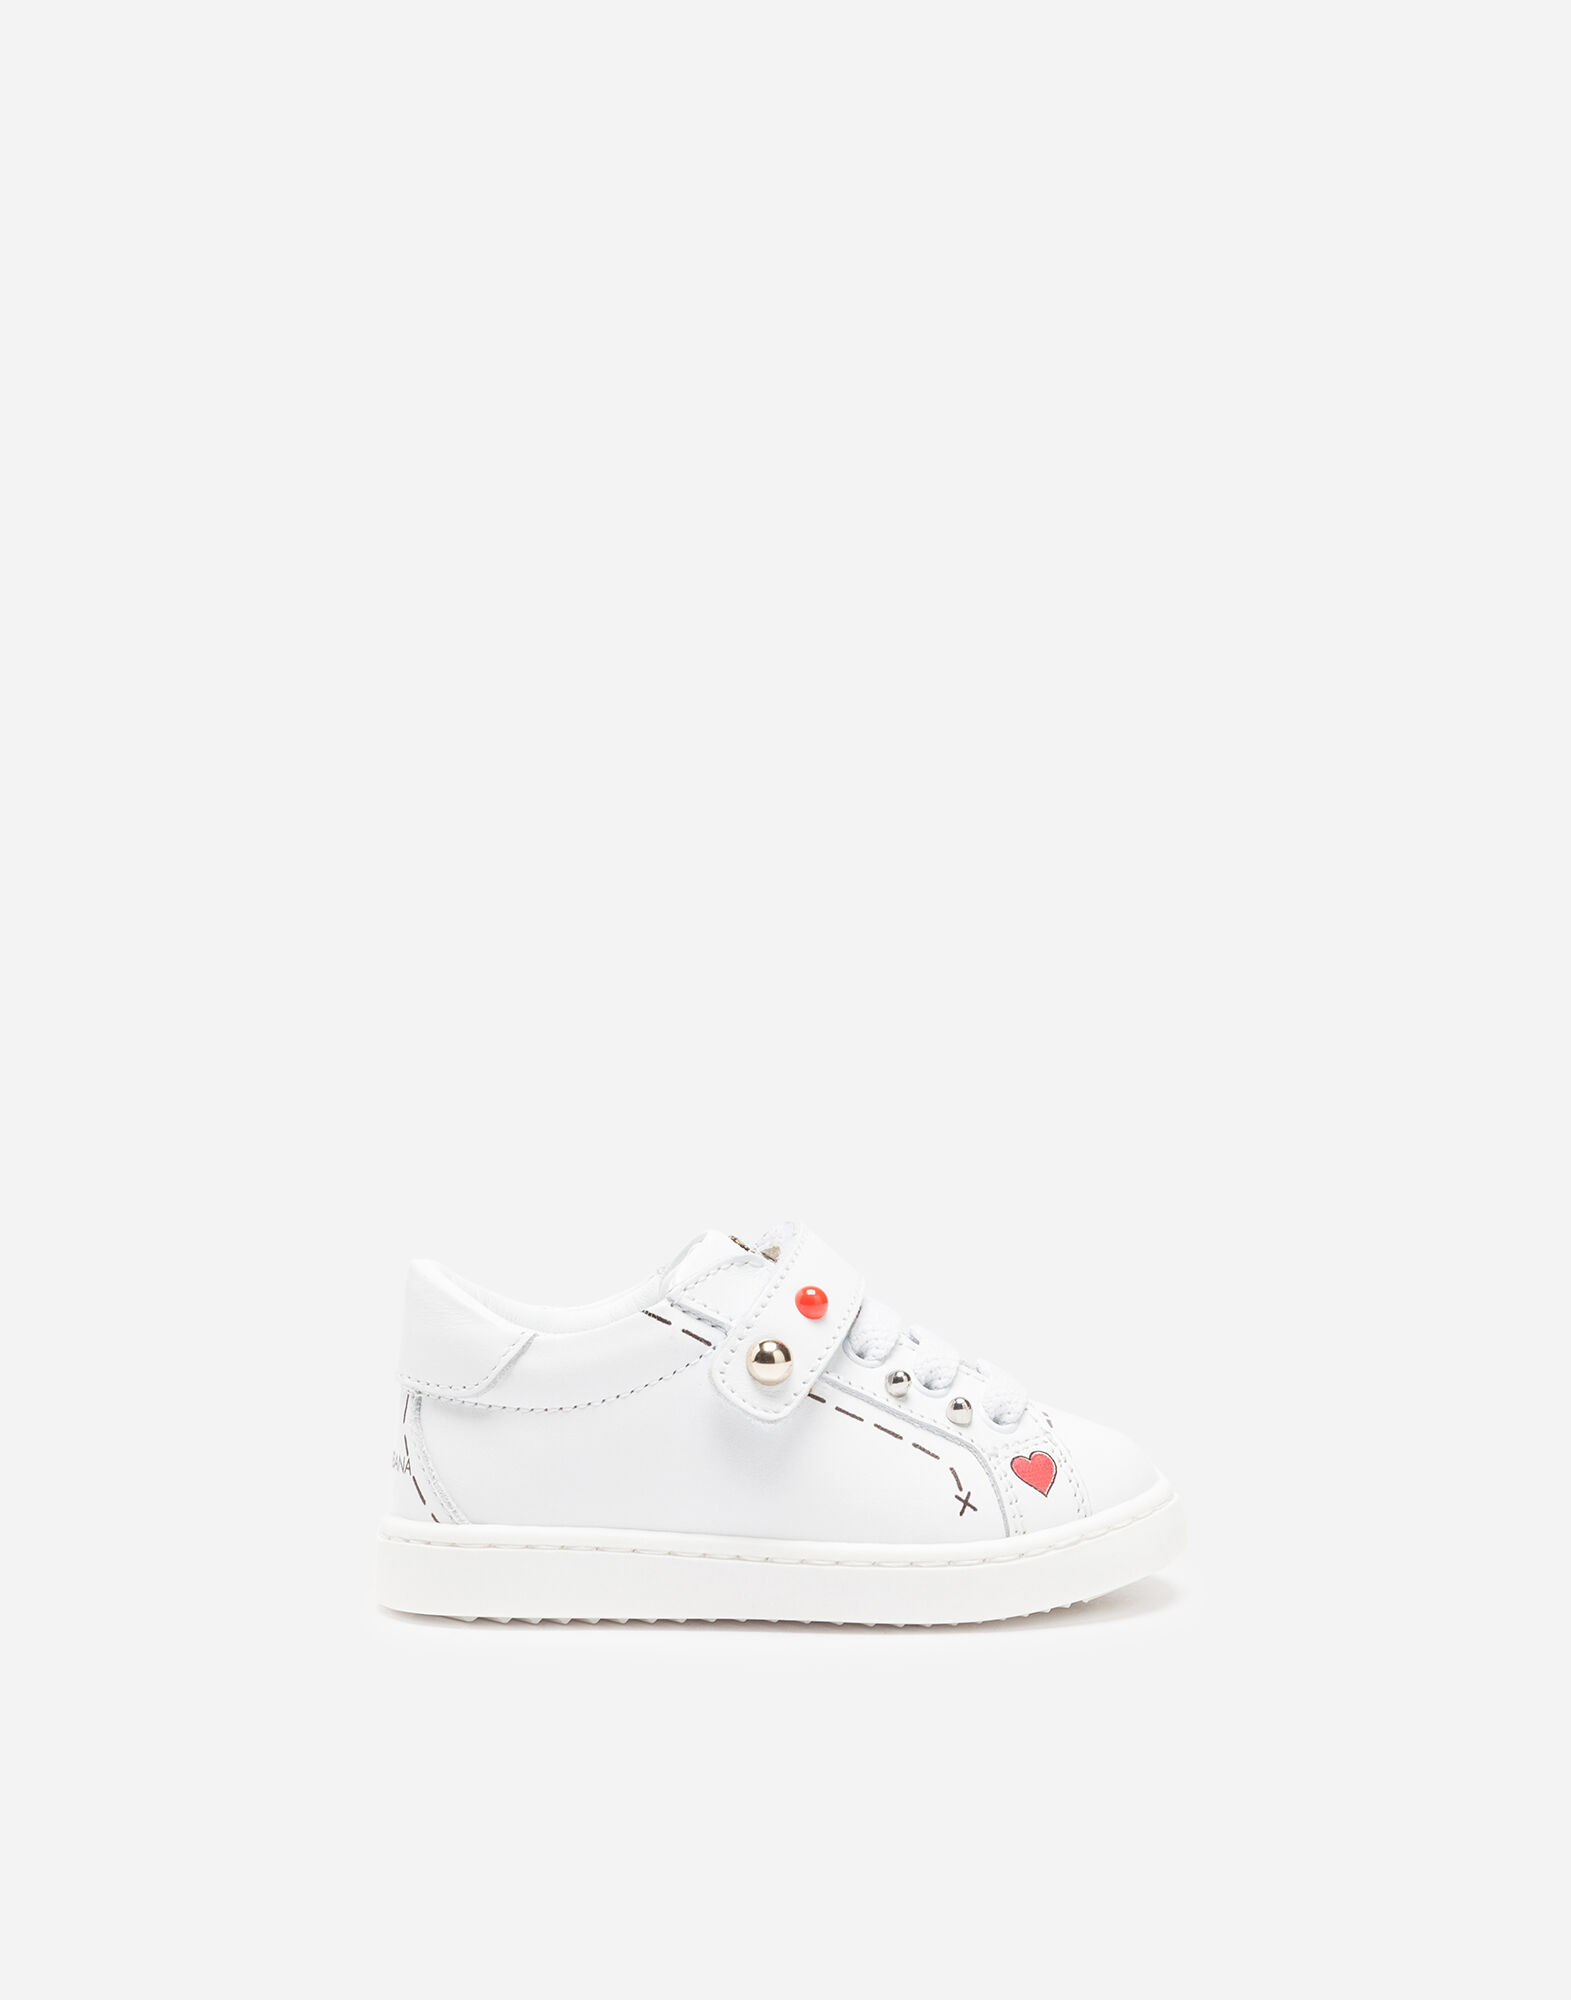 KID'S FIRST STEPS LEATHER SNEAKERS